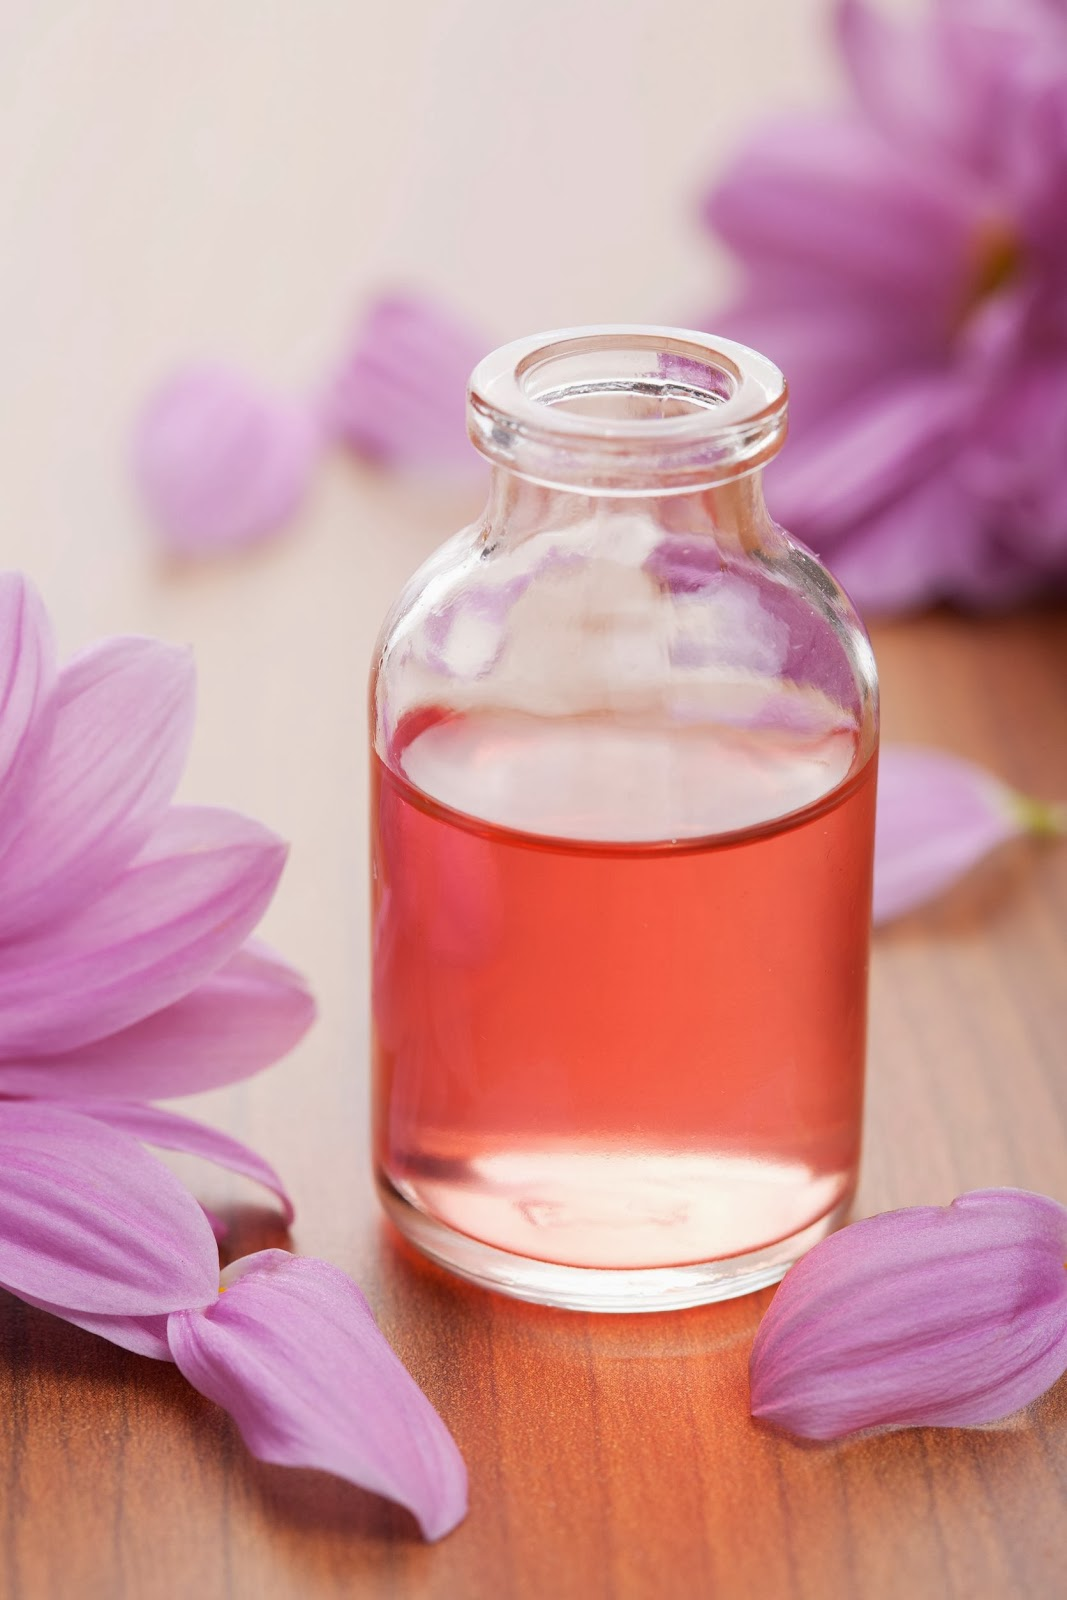 Permalink to Dangers Behind the Benefits of Aromatherapy